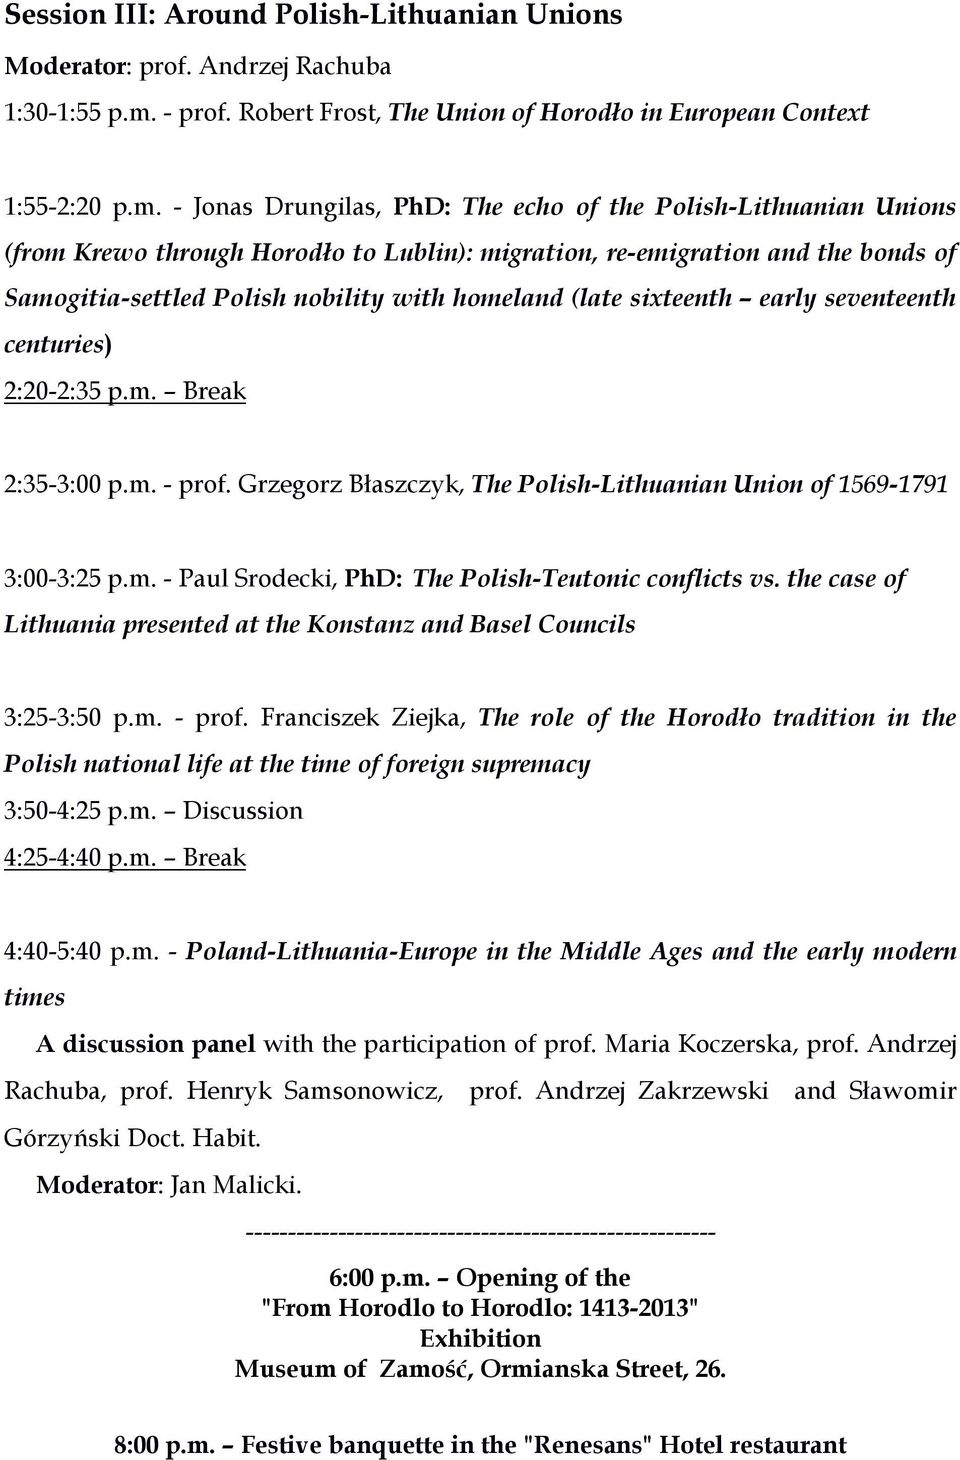 - Jonas Drungilas, PhD: The echo of the Polish-Lithuanian Unions (from Krewo through Horodło to Lublin): migration, re-emigration and the bonds of Samogitia-settled Polish nobility with homeland